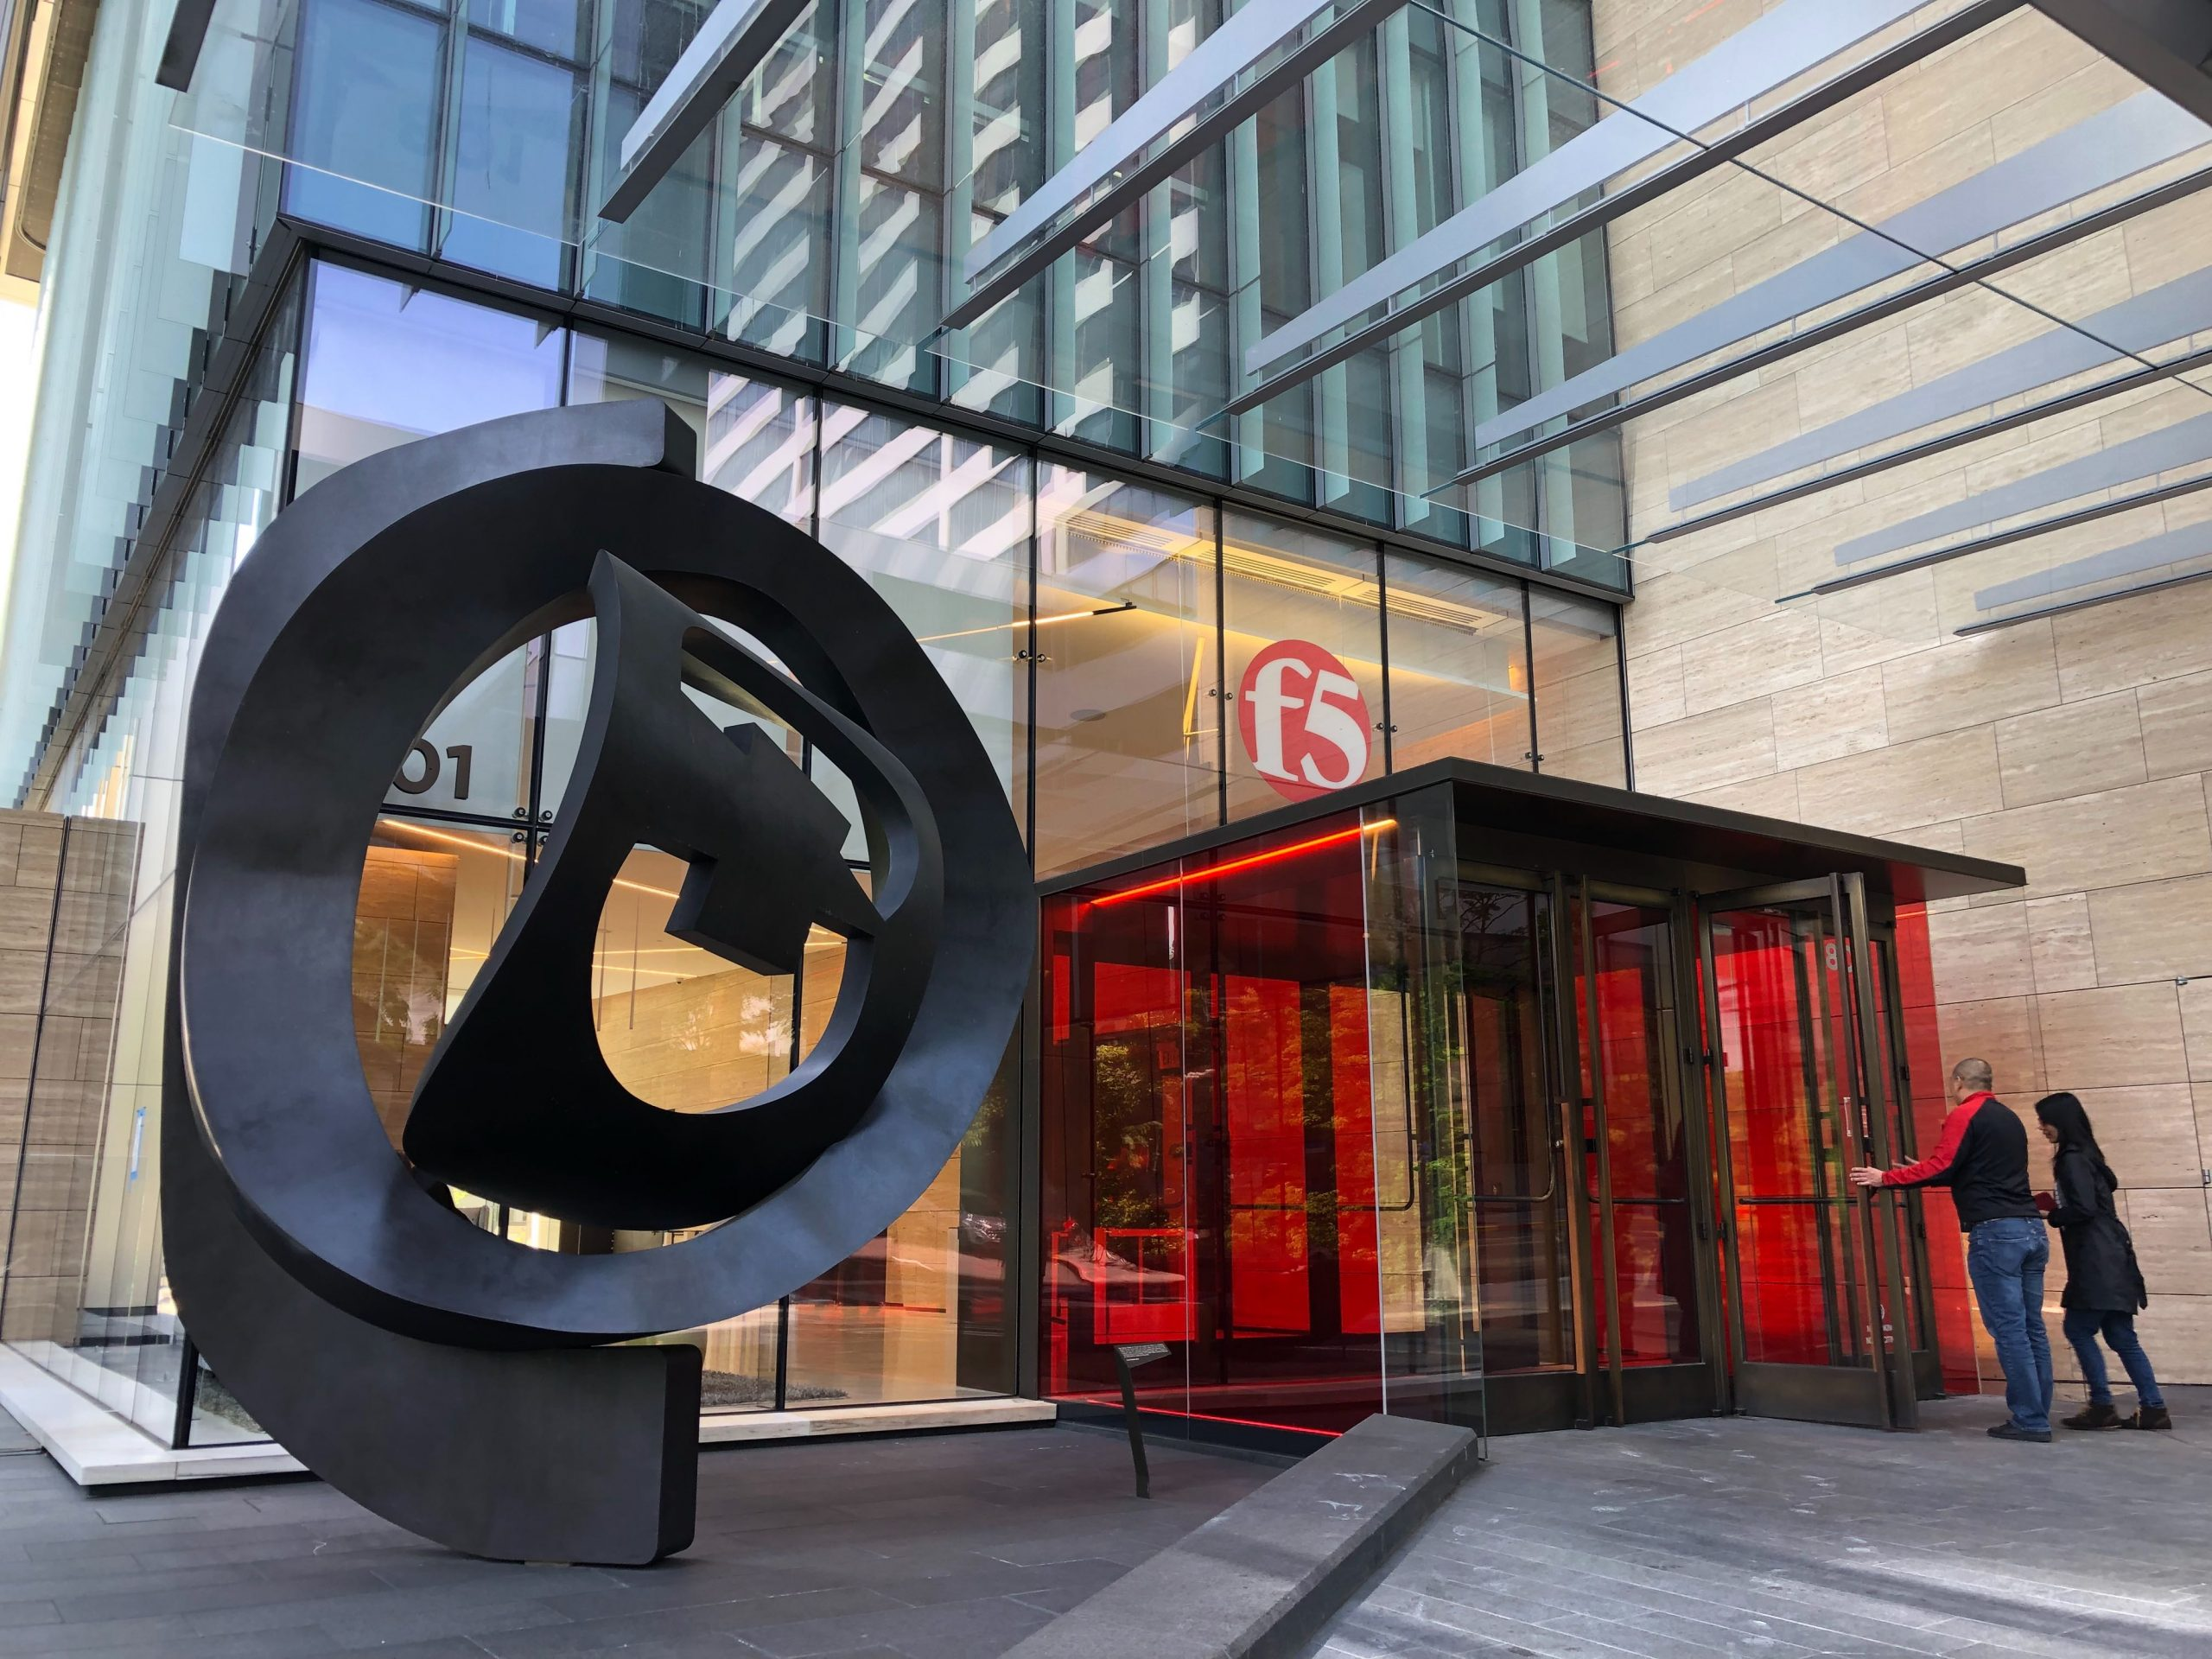 F5 Networks beats quarterly expectations as revenue up 11% to $645M, but stock dips 5%